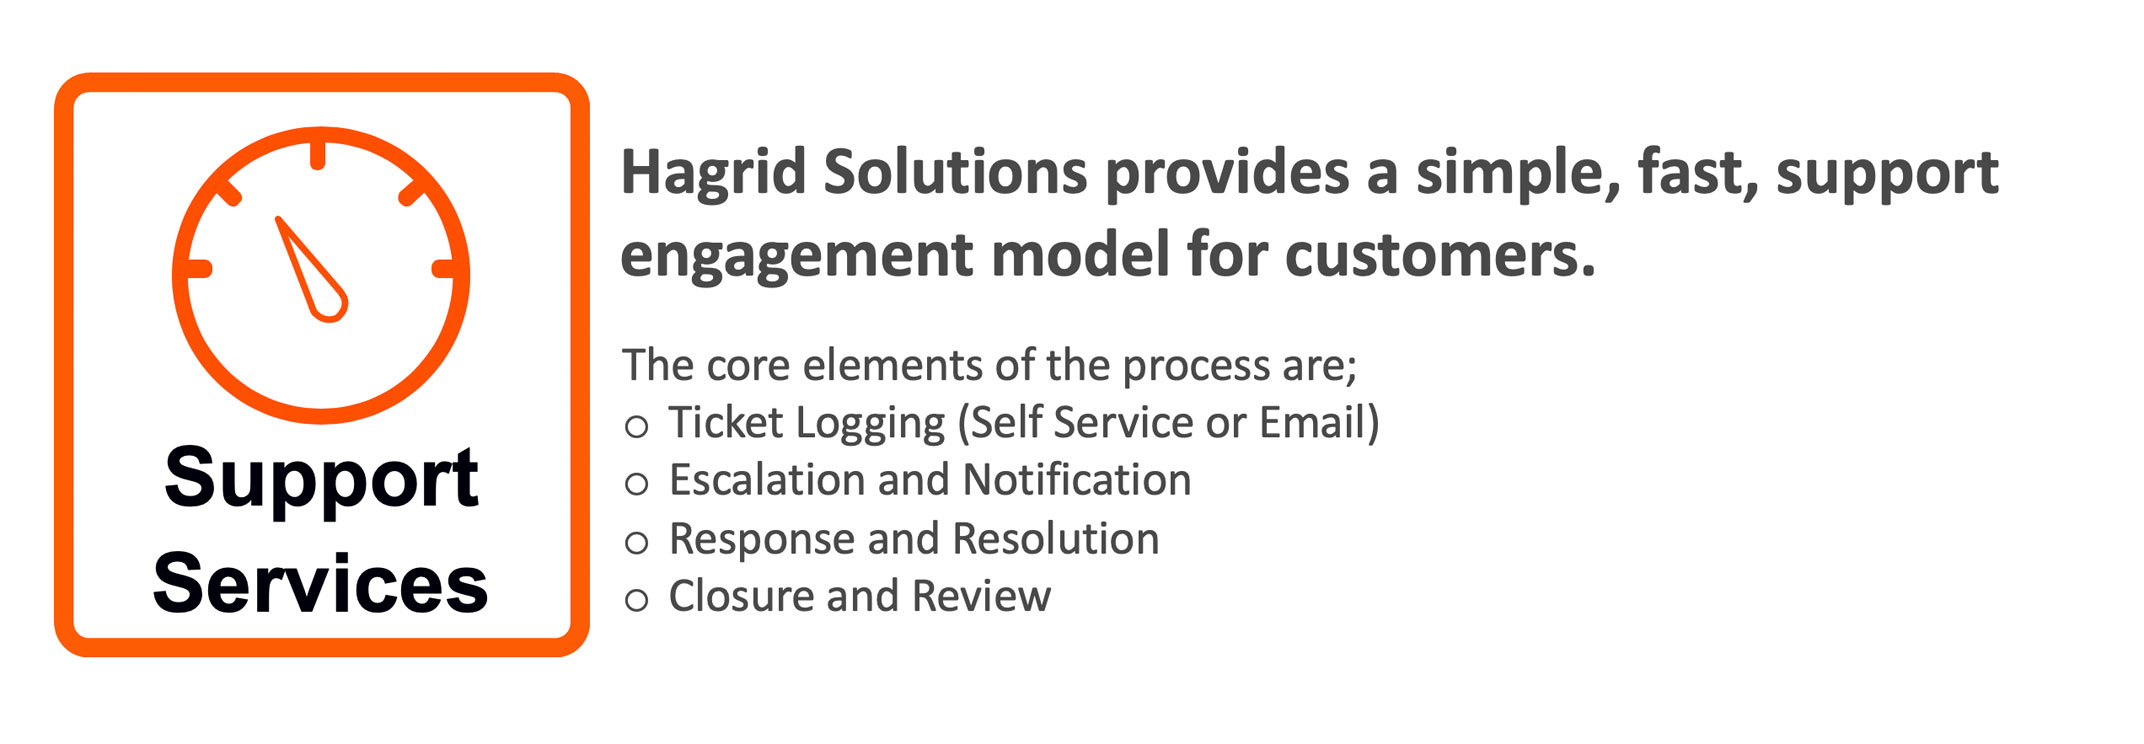 Hagrid Solutions - Support Services